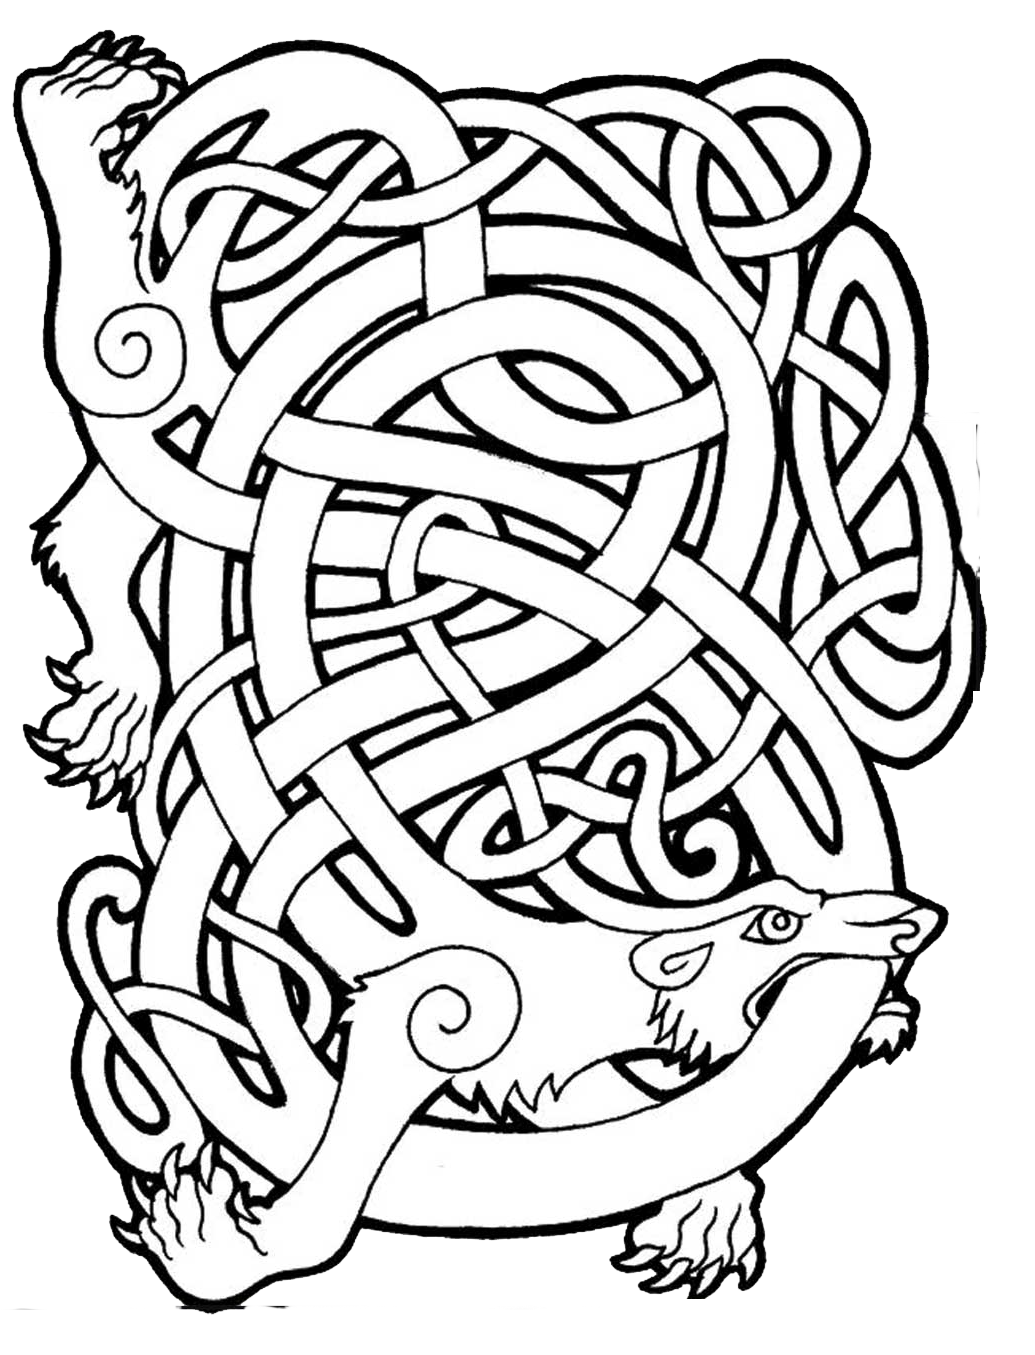 Viking norway cross clipart clip freeuse library Pin by Rodion Polchaninov on Celtic&Scandinavian | Pinterest ... clip freeuse library